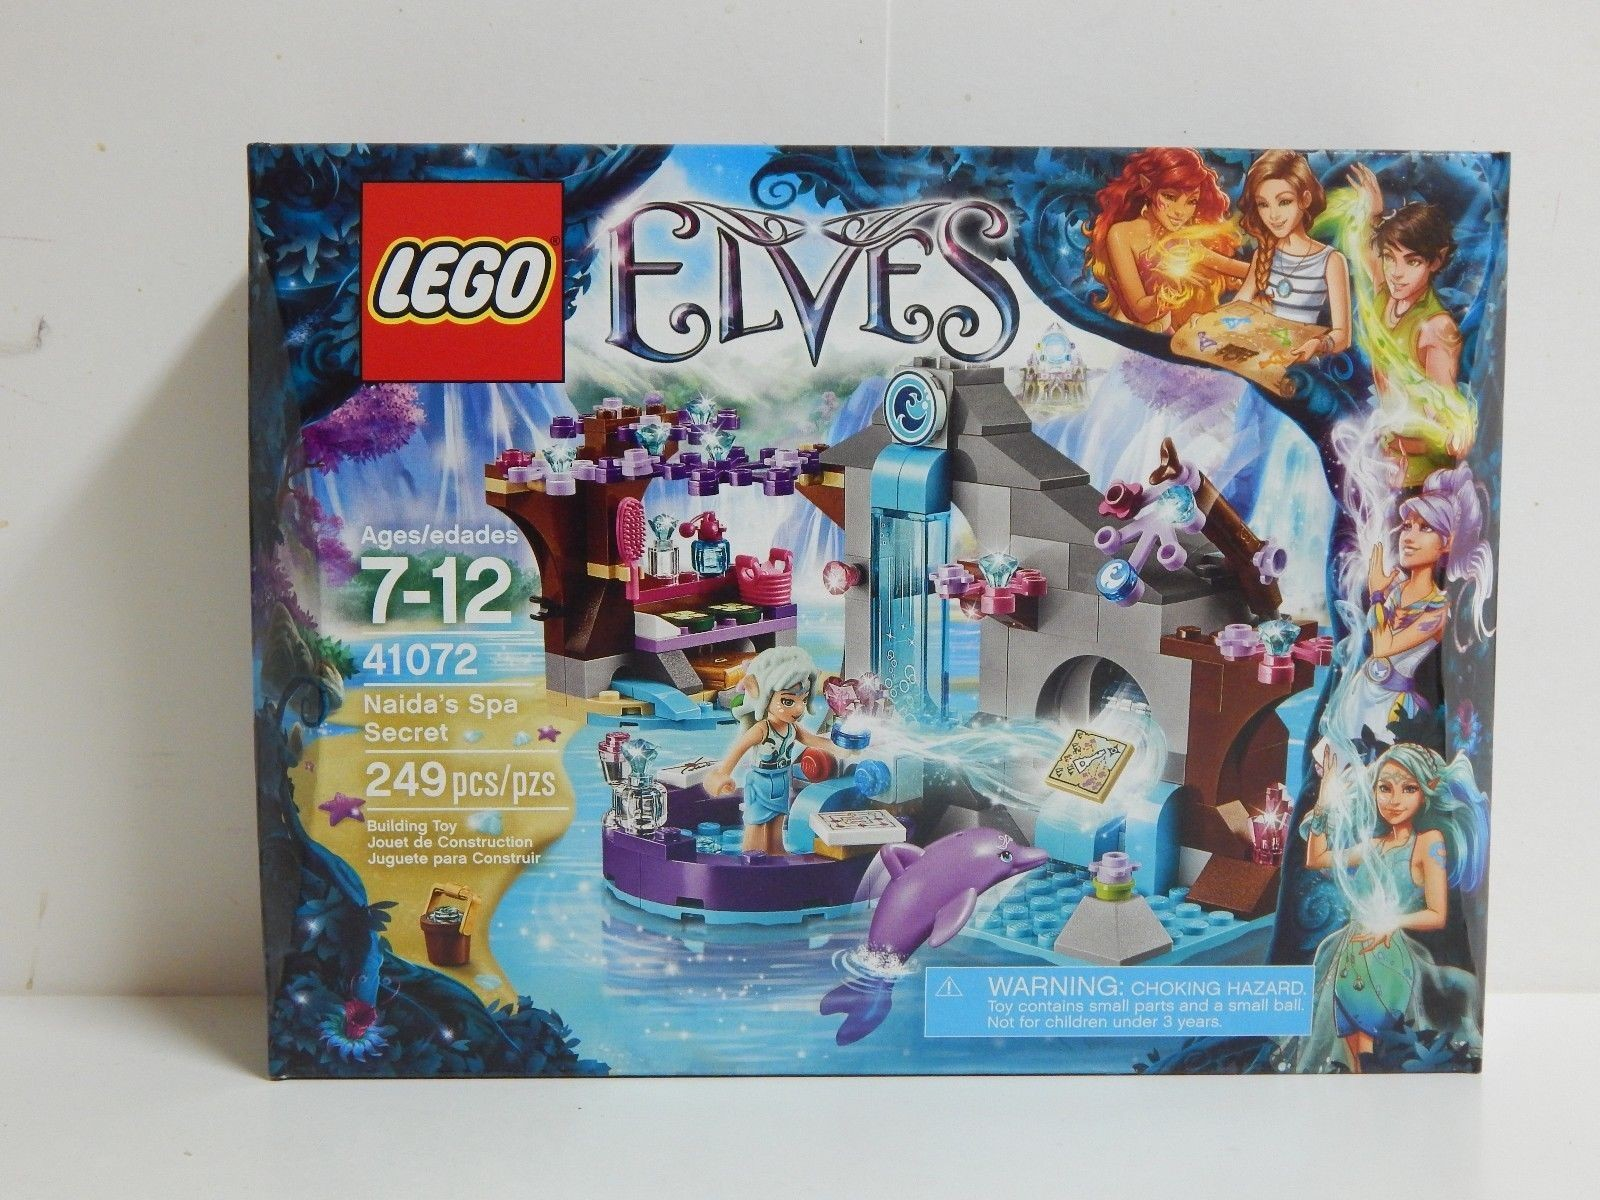 Lego March Calendar Actual Lego Elves Naida S Spa Secret Factory Sealed Retired sold Out Of Lego March Calendar Recientes Jarrod11 Snowboundnh On Pinterest